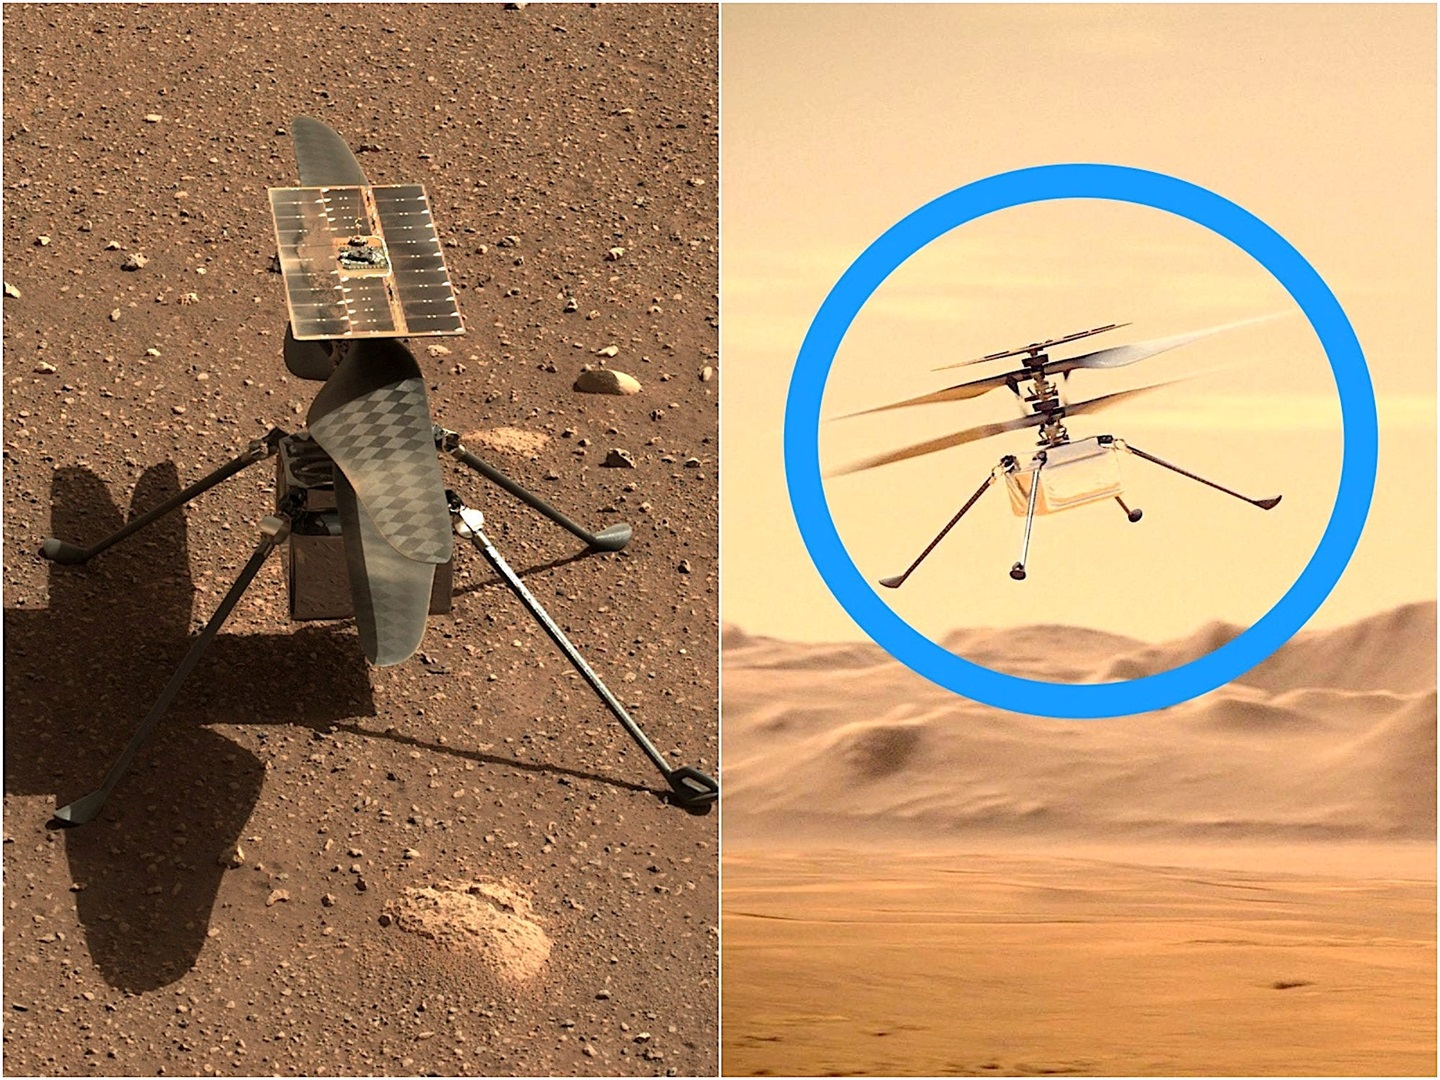 NASA's Ingenuity helicopter just flew sideways over the Martian surface in its second aerial adventure - Business Insider South Africa